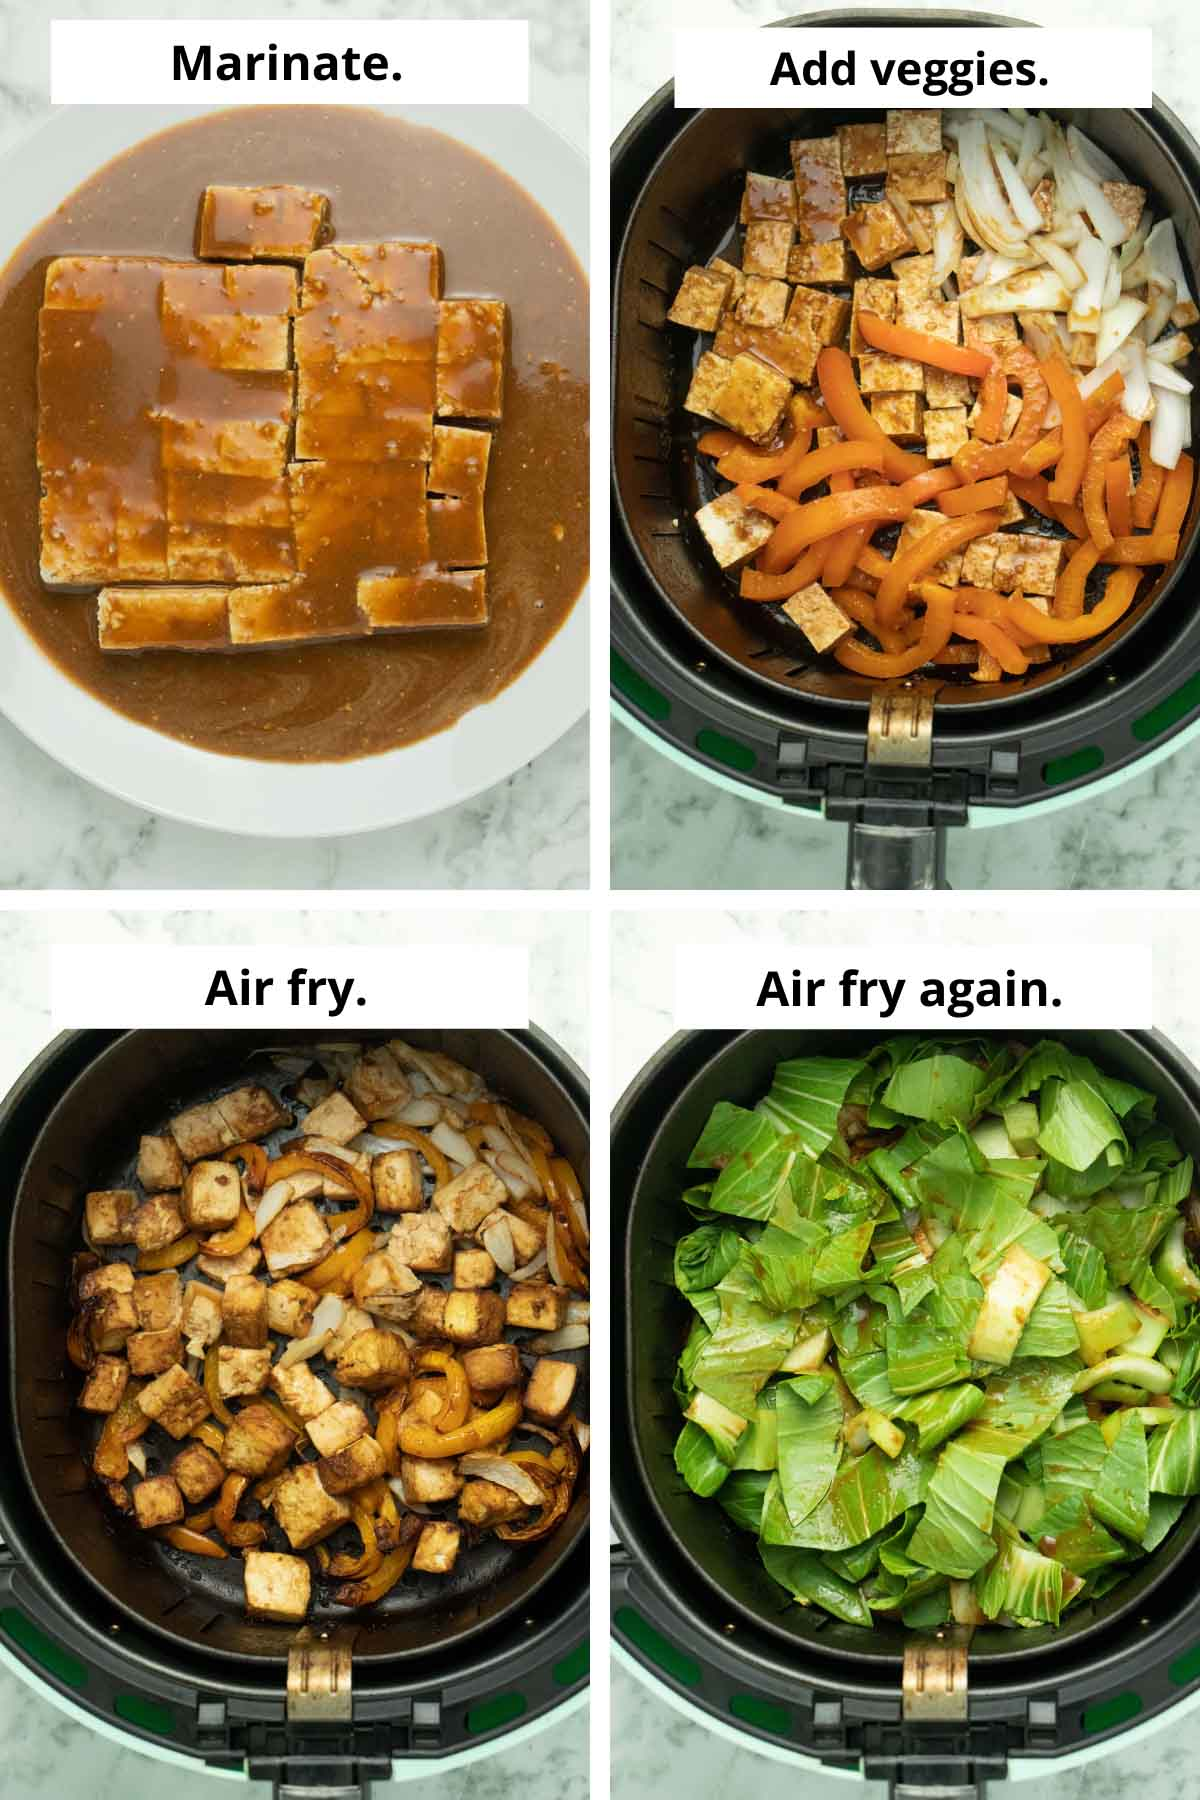 image collage showing marinating tofu, tofu and veggies before and after cooking, and adding the bok choy to the air fryer basket